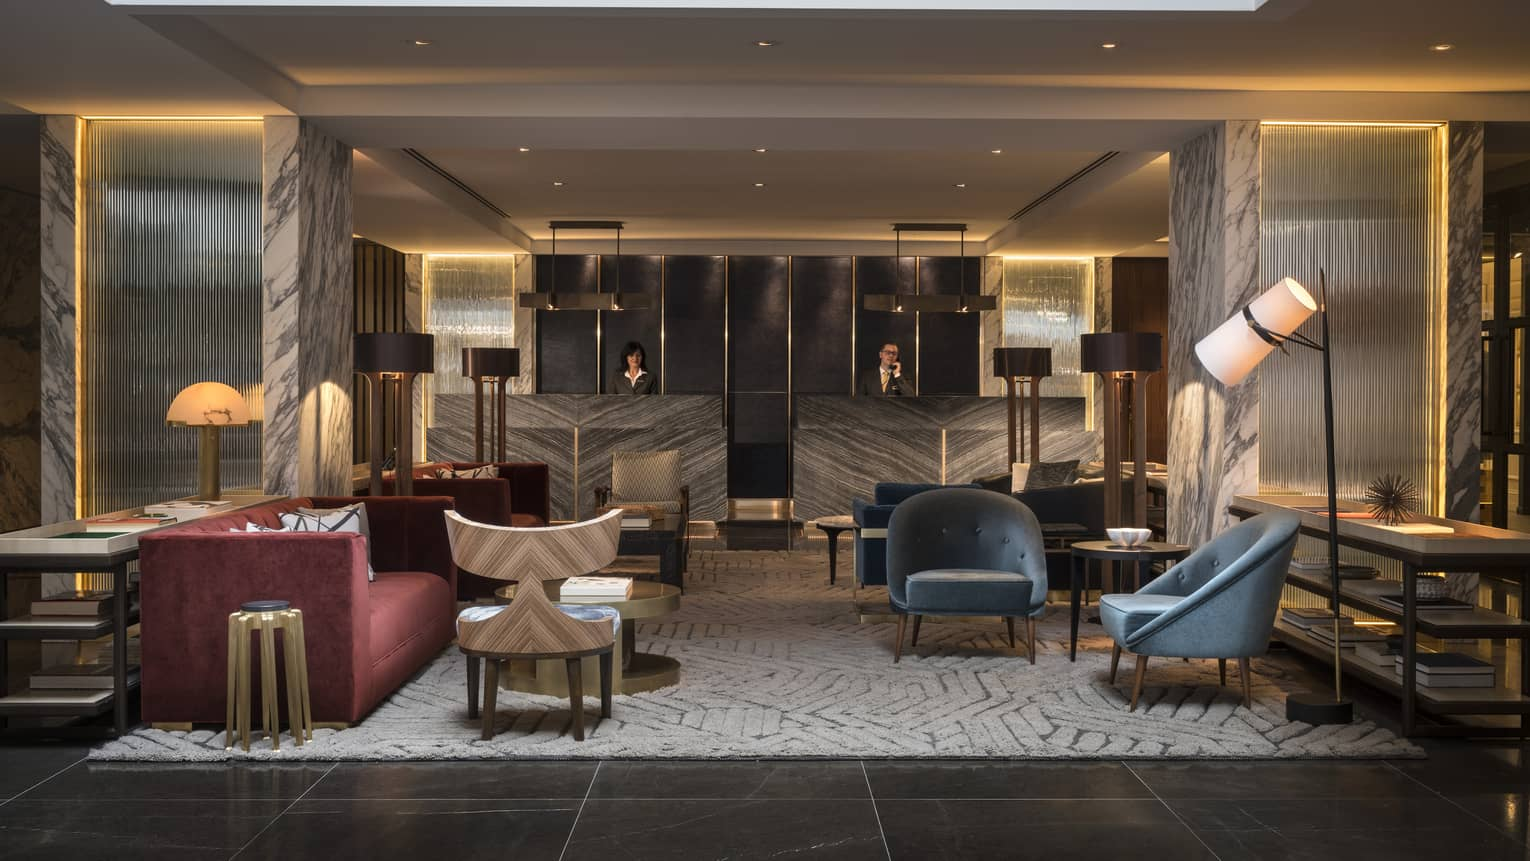 The Lobby of Four Seasons Houston is furnished with two blue velvet arm chairs, a gray and cream abstract rug, a red velvet couch, and an industrial black iron lamp